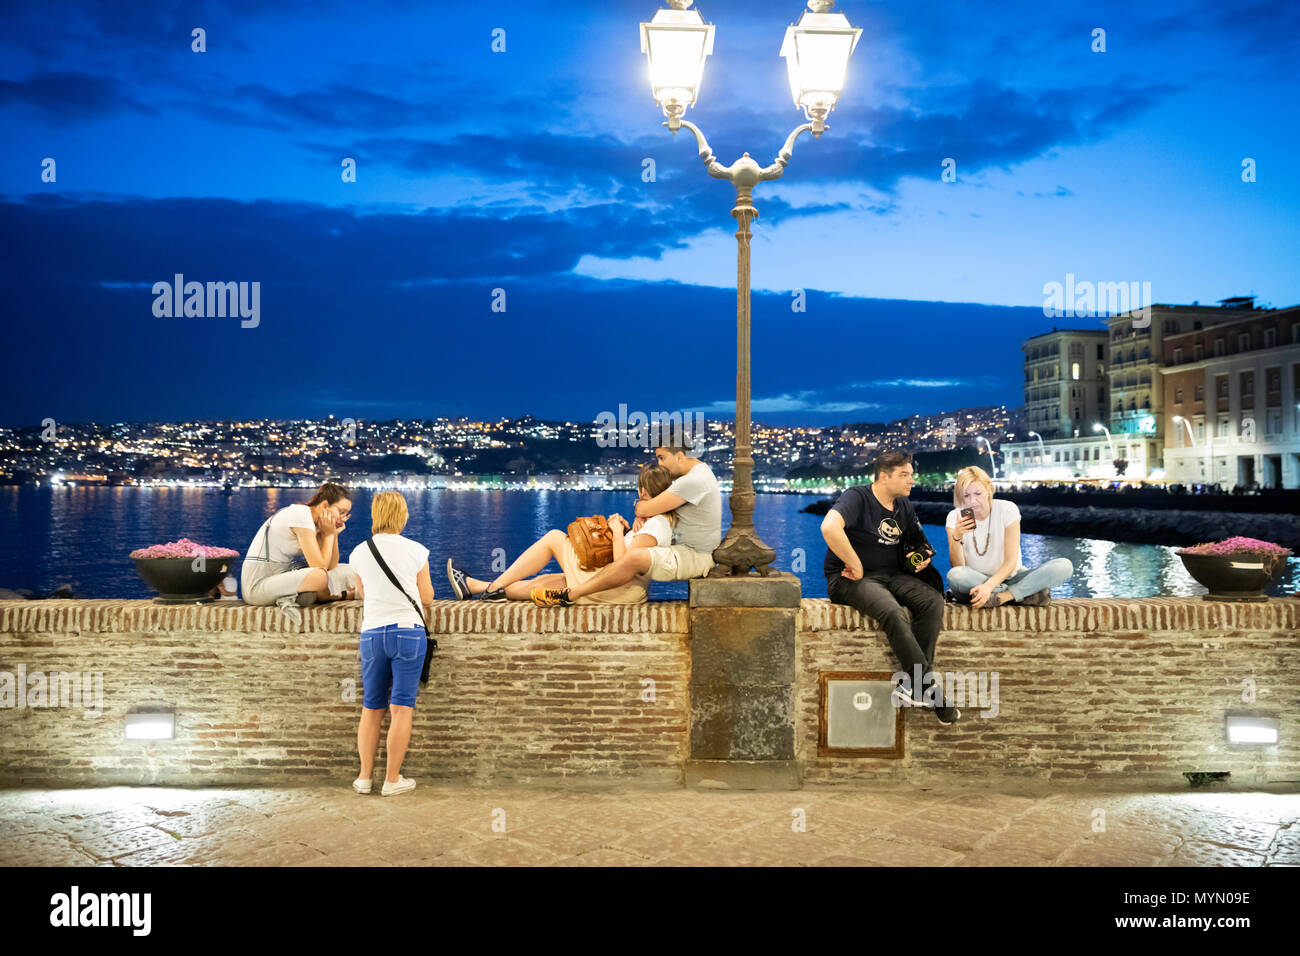 People sitting on wall under street lamp by the Castel dell Ovo at dusk, Naples, Campania, Italy, Europe - Stock Image